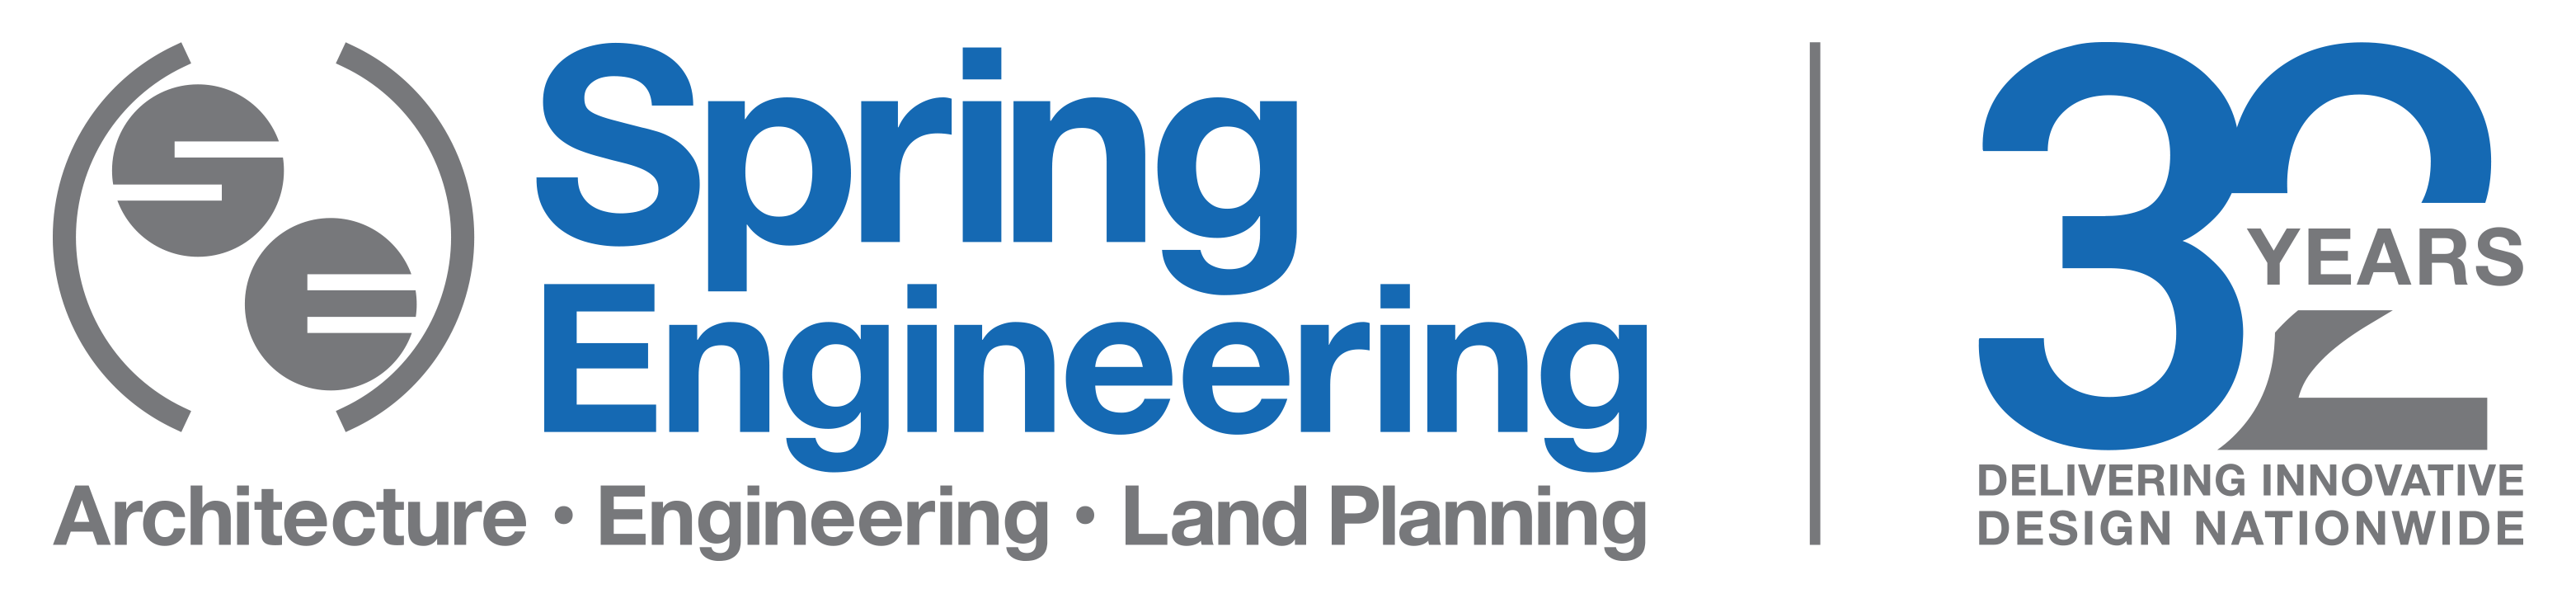 Spring Engineering, Inc.